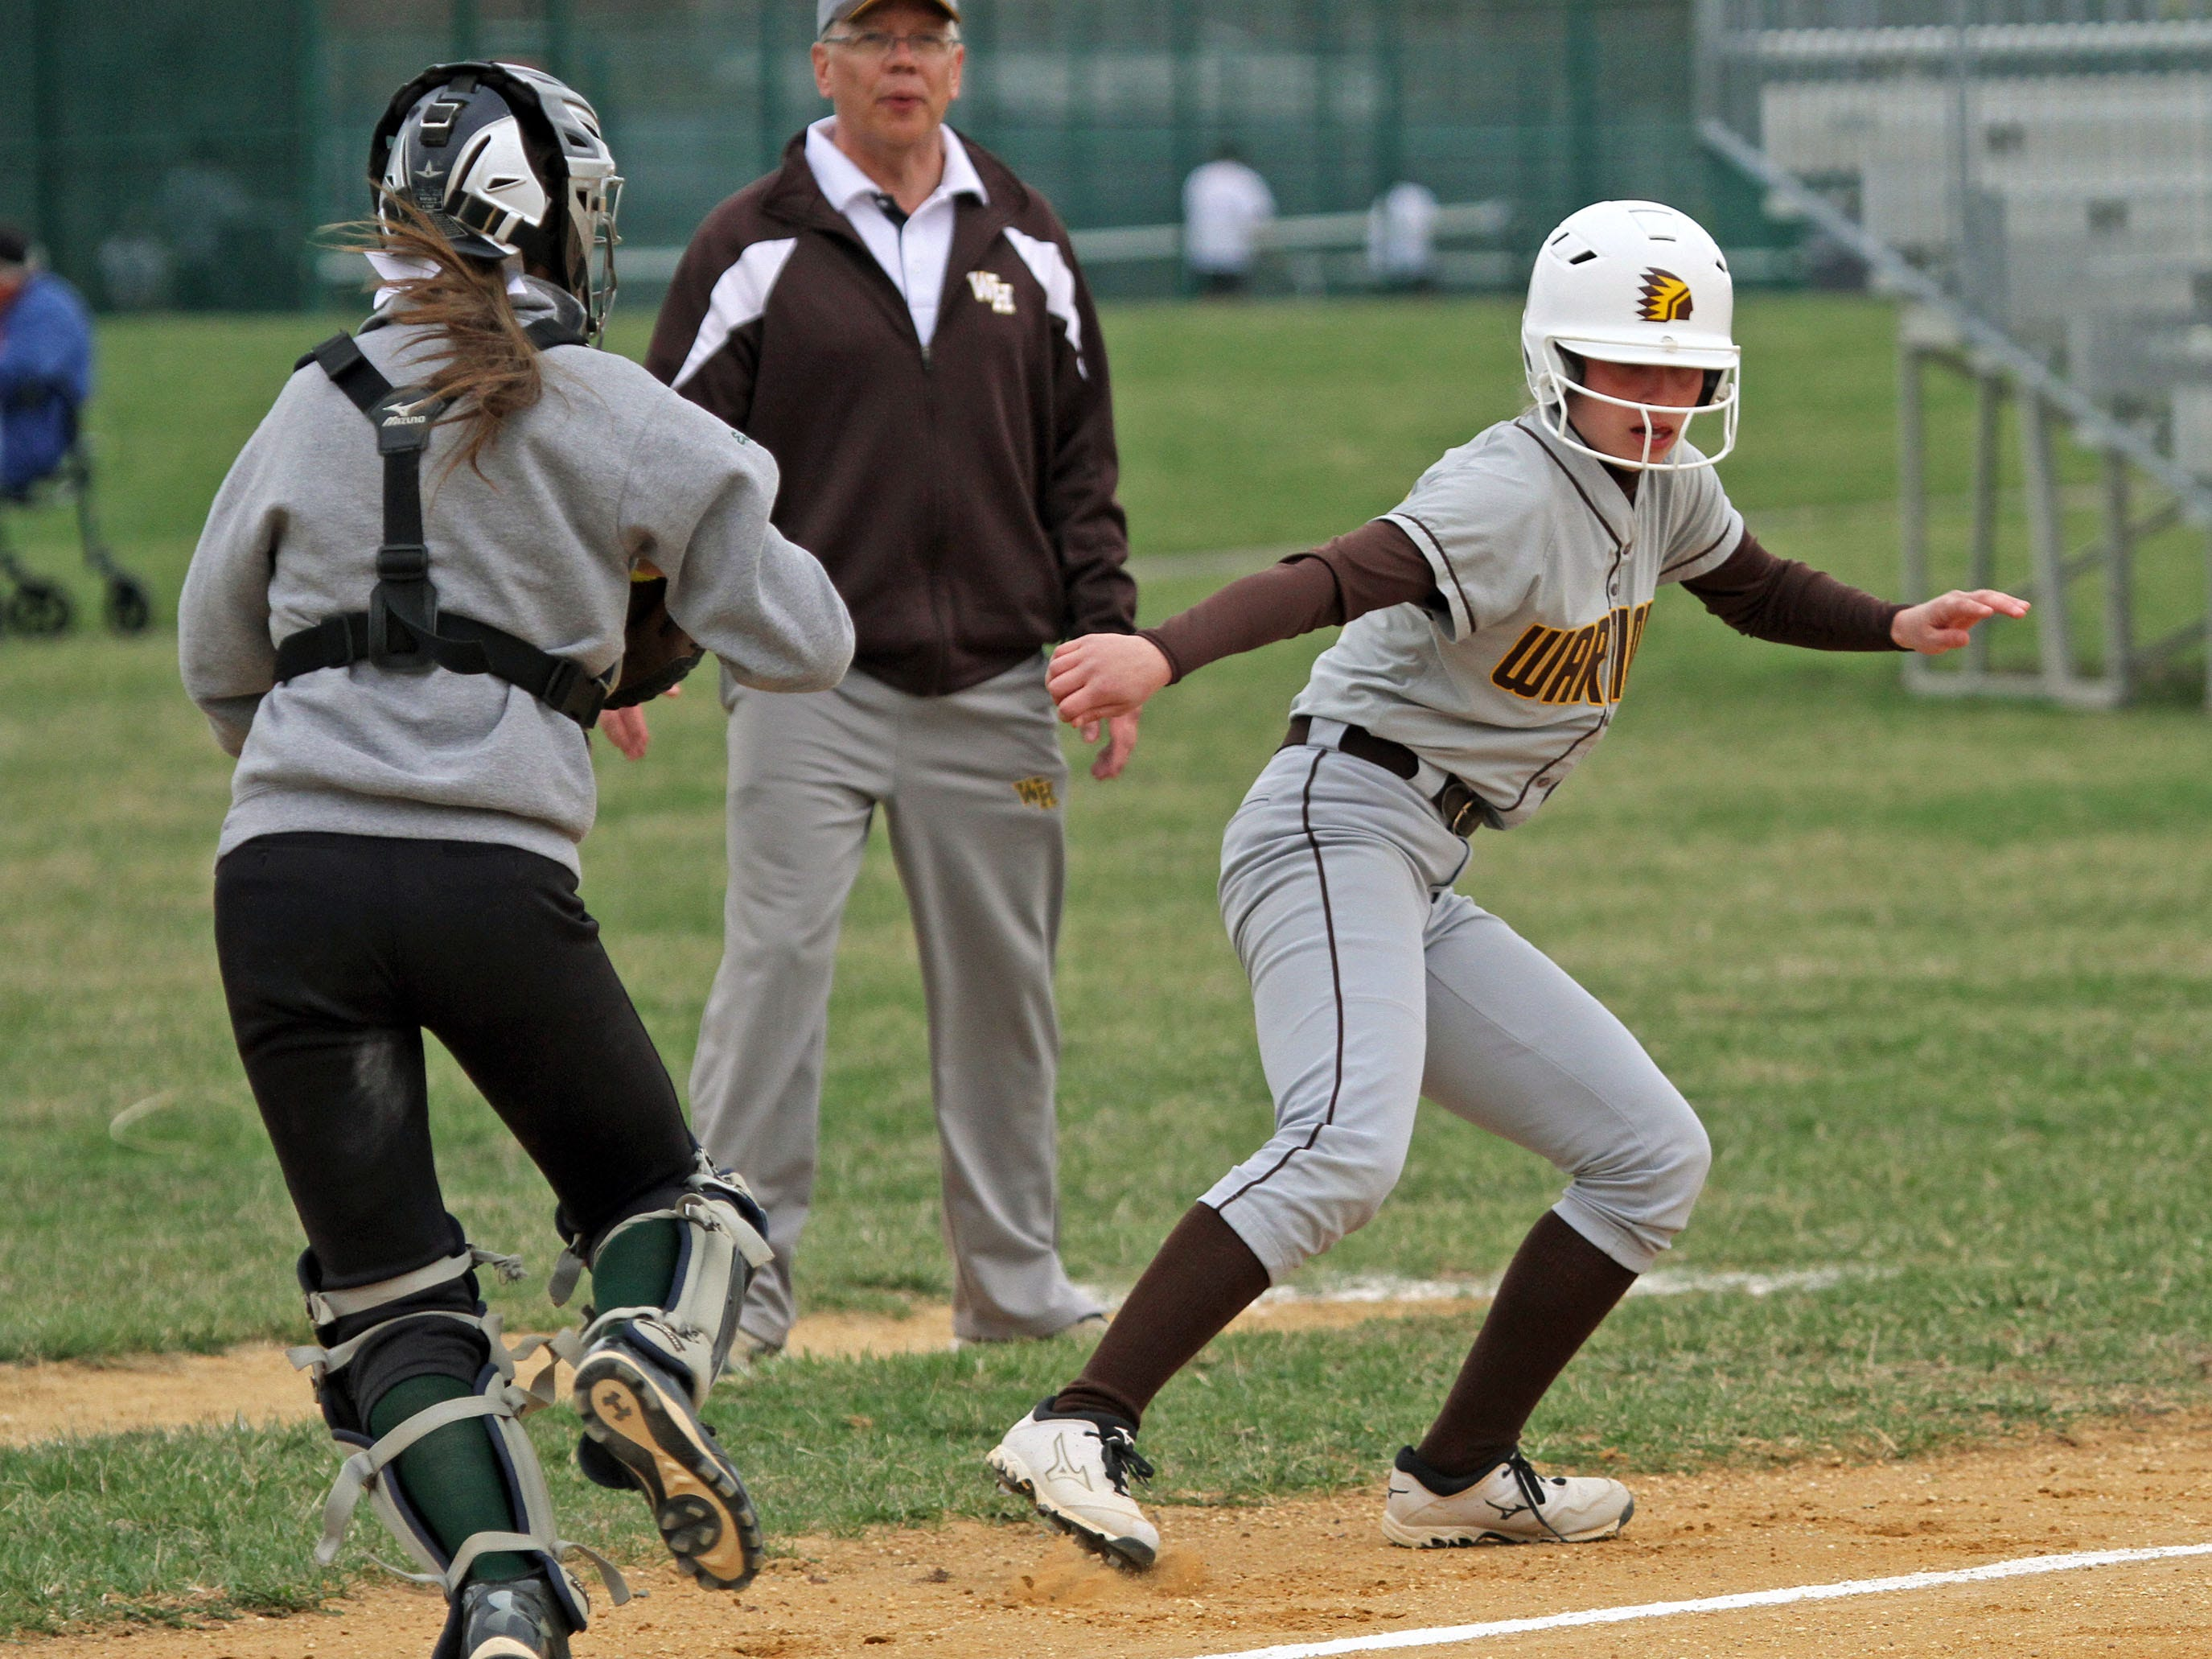 Watchung Hills' Alyssa Murray is caught in a run down between third and home. Montgomery catcher Kelsey Woodard chases her back to third where she was tagged out by Montgomery's Demitria Kitrine. This is action of Watchung Hills at Montgomery in girls softball.